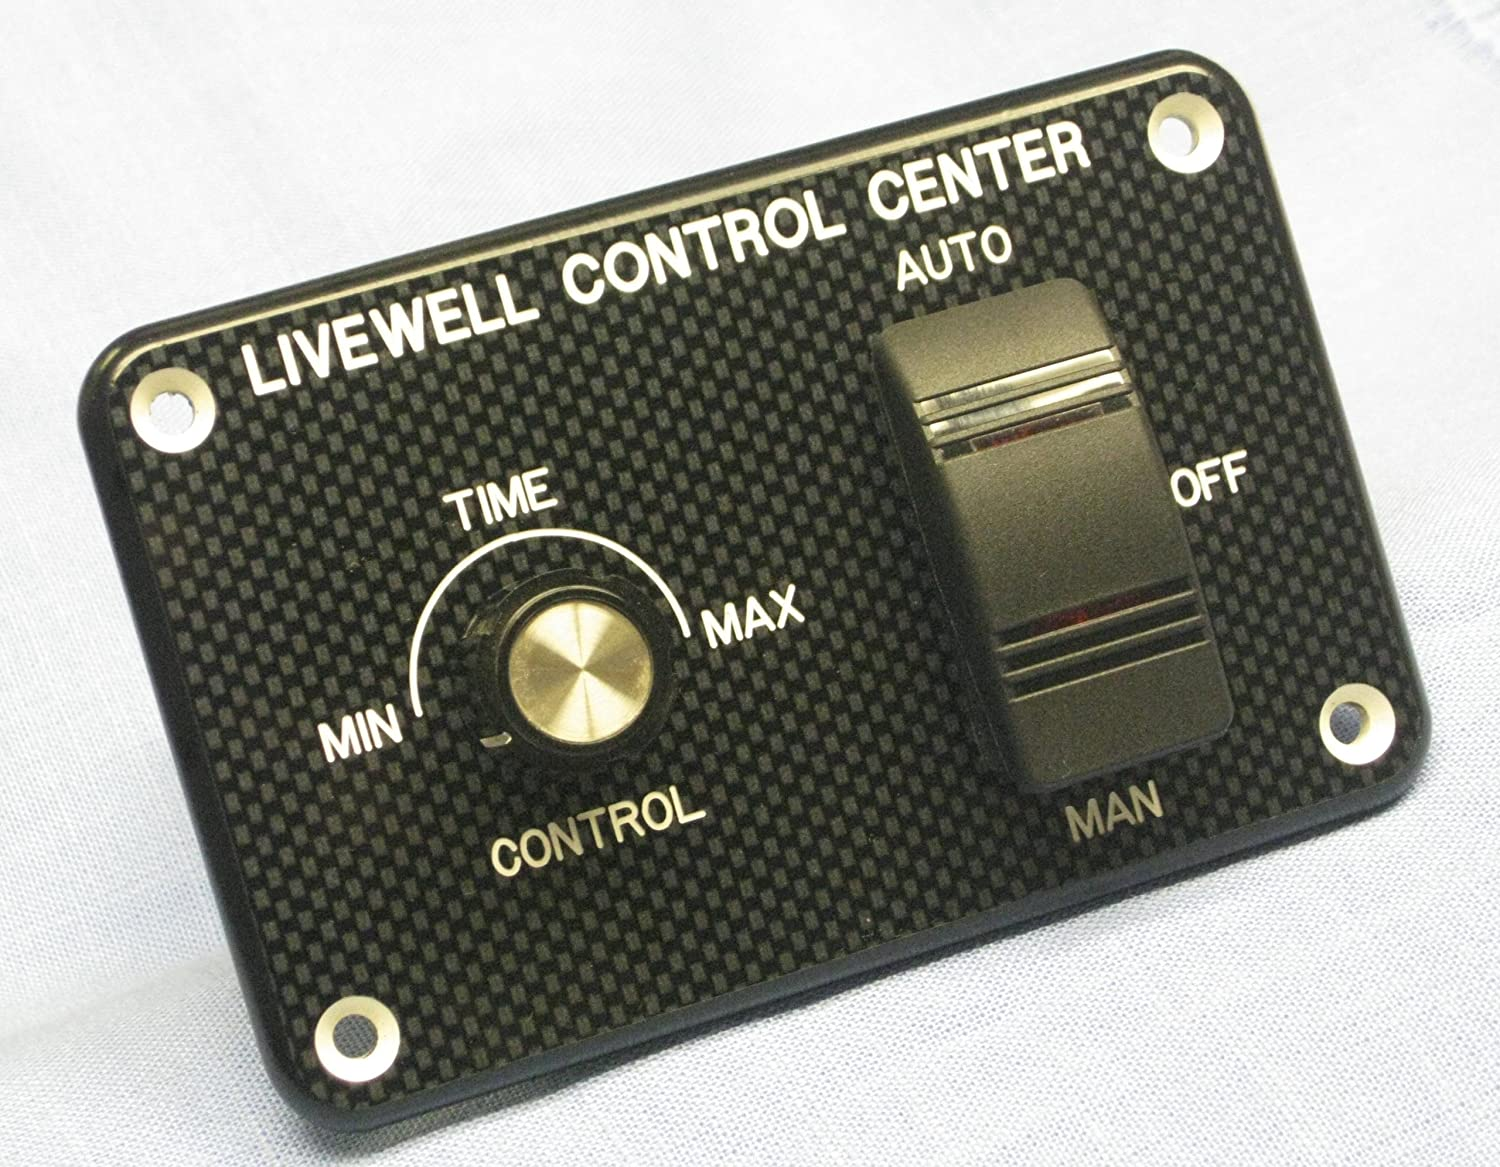 emerson pool pump motor wiring diagram live well timer wiring diagram on off wall switch diagram #13